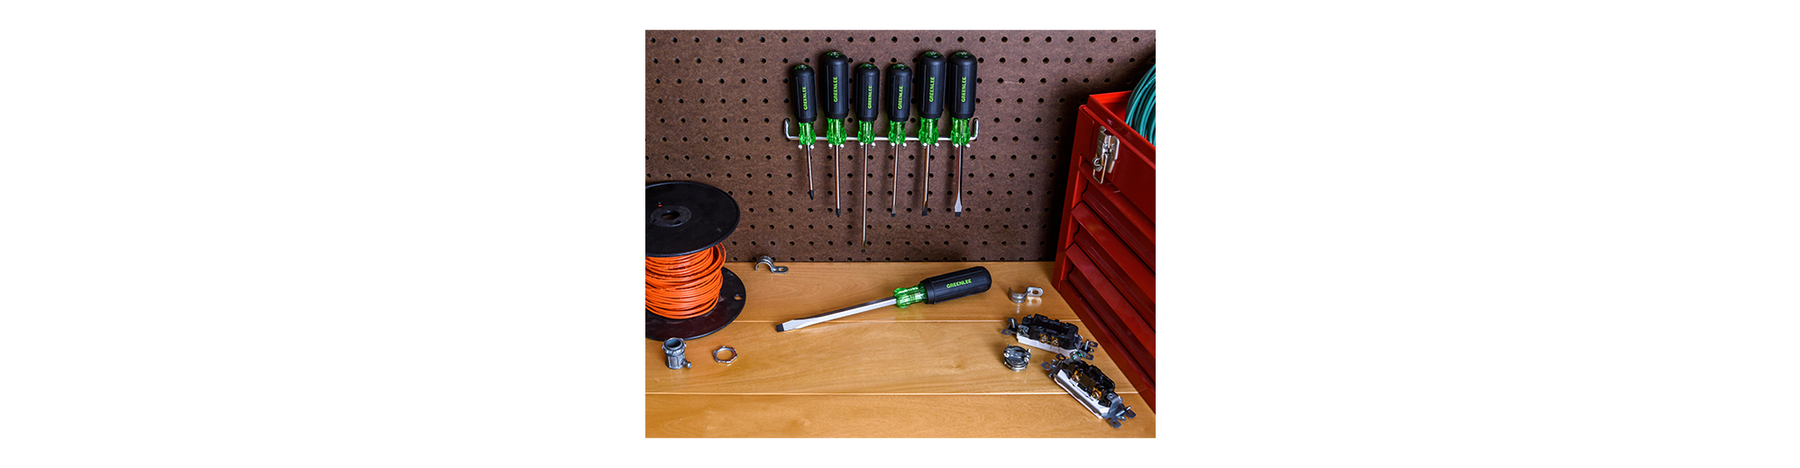 Greenlee Tools - Full Catalog Online